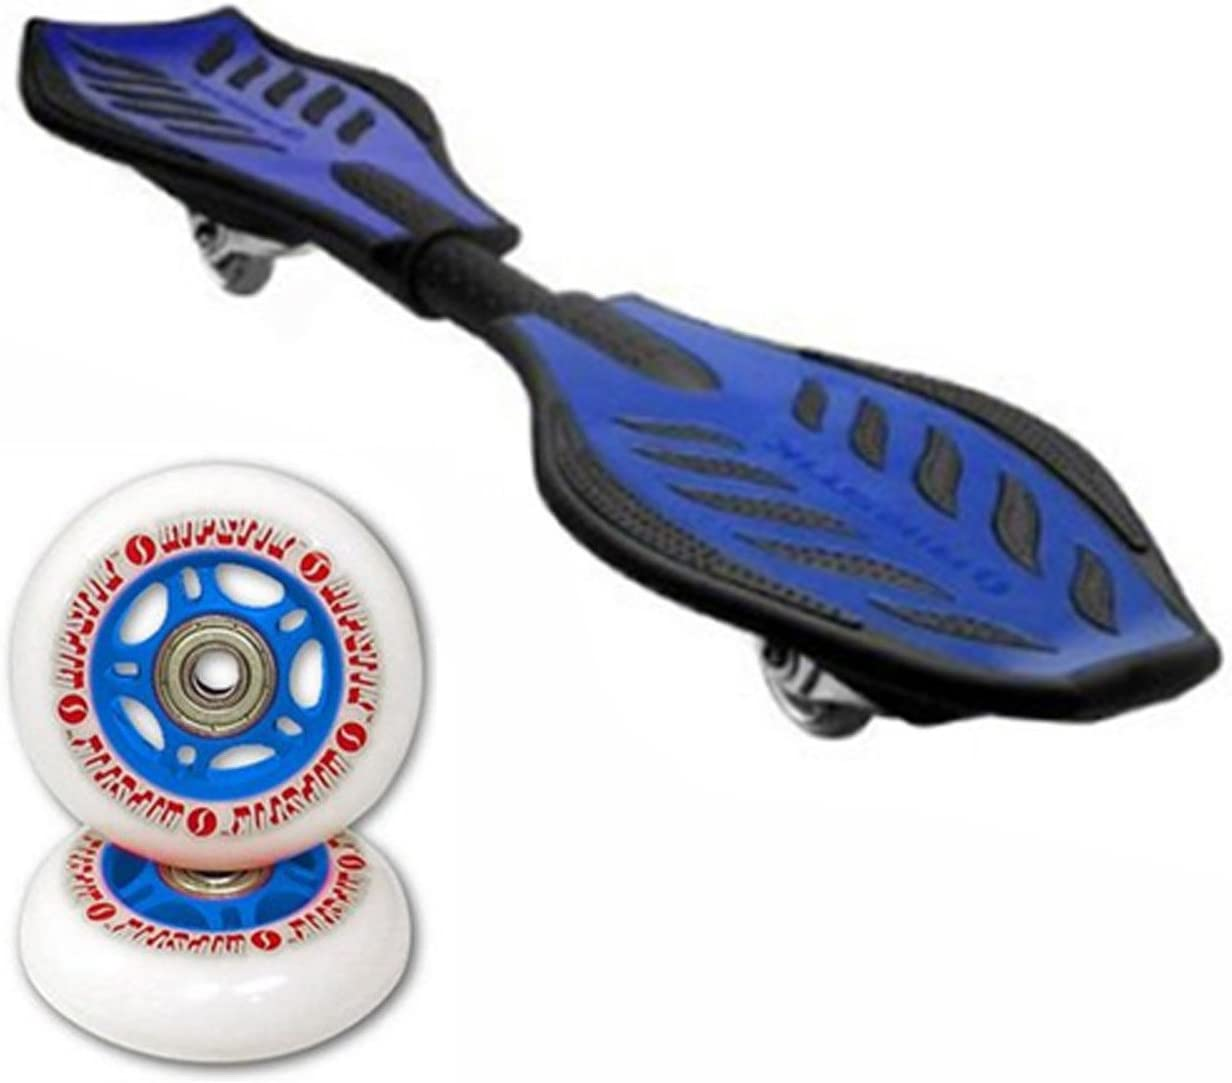 Razor RipStik Max 73% OFF Caster Board Value Wheels Blue Extra With Pack Over item handling ☆